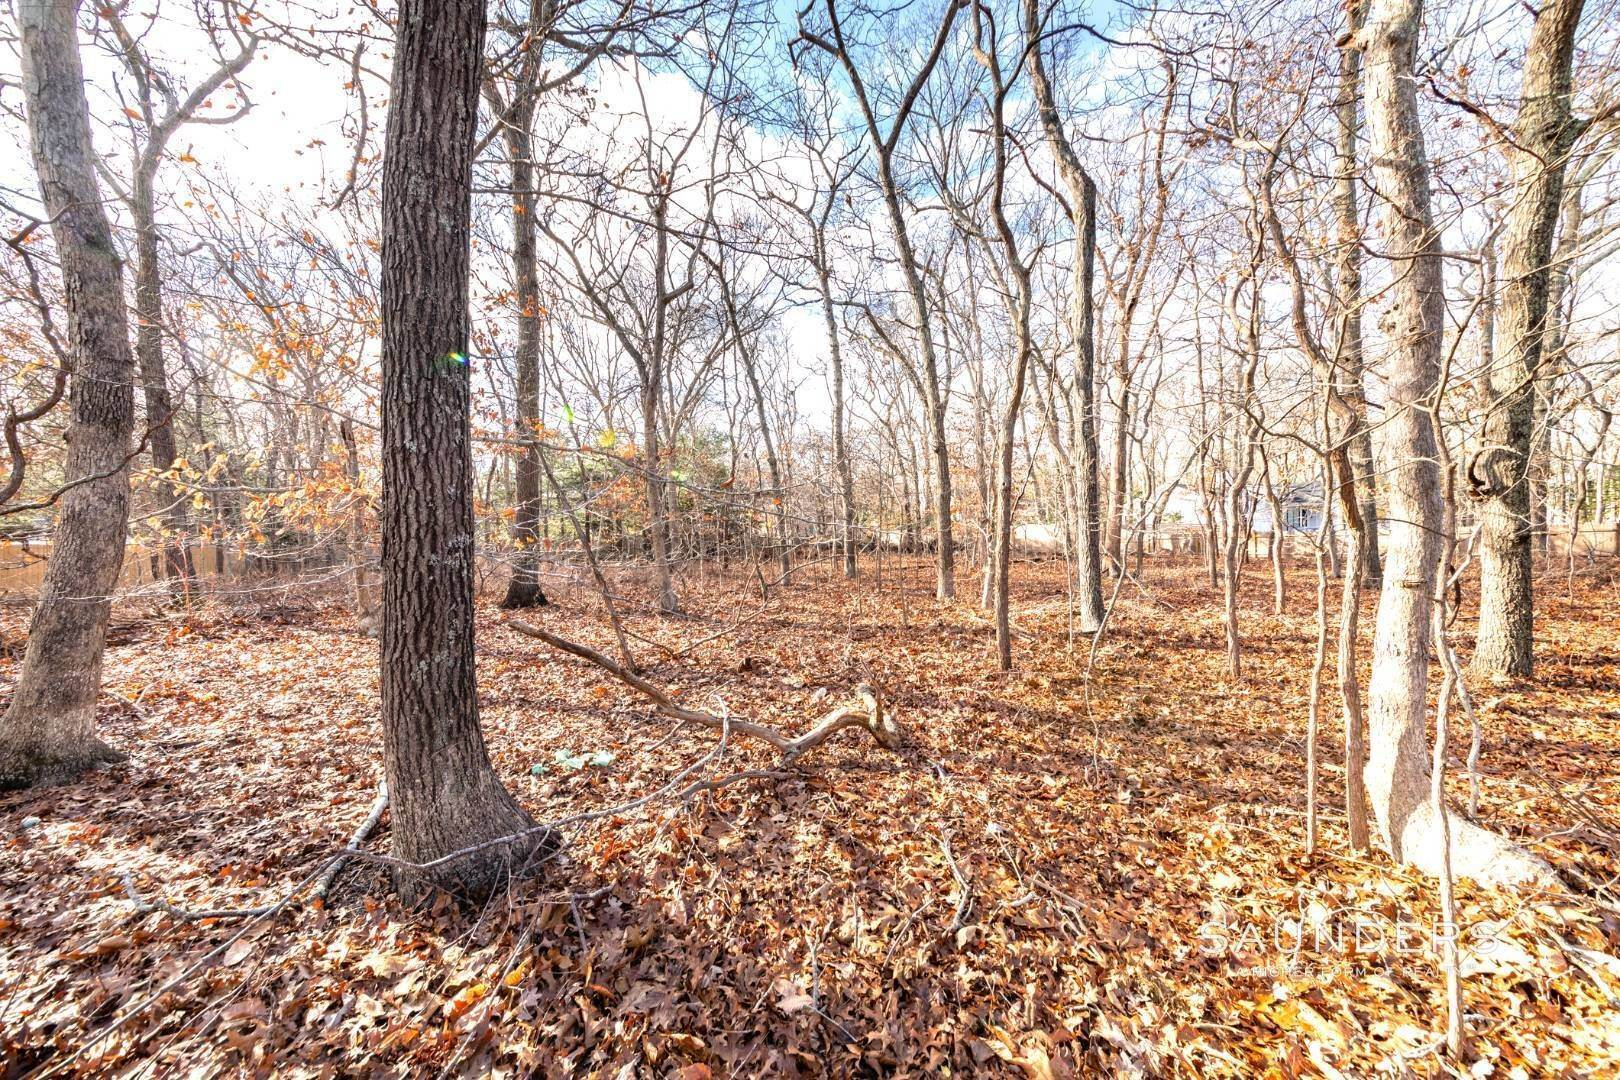 Land at Land Opportunity In East Hampton Springs 56 Glade Road, East Hampton, East Hampton Town, NY 11937